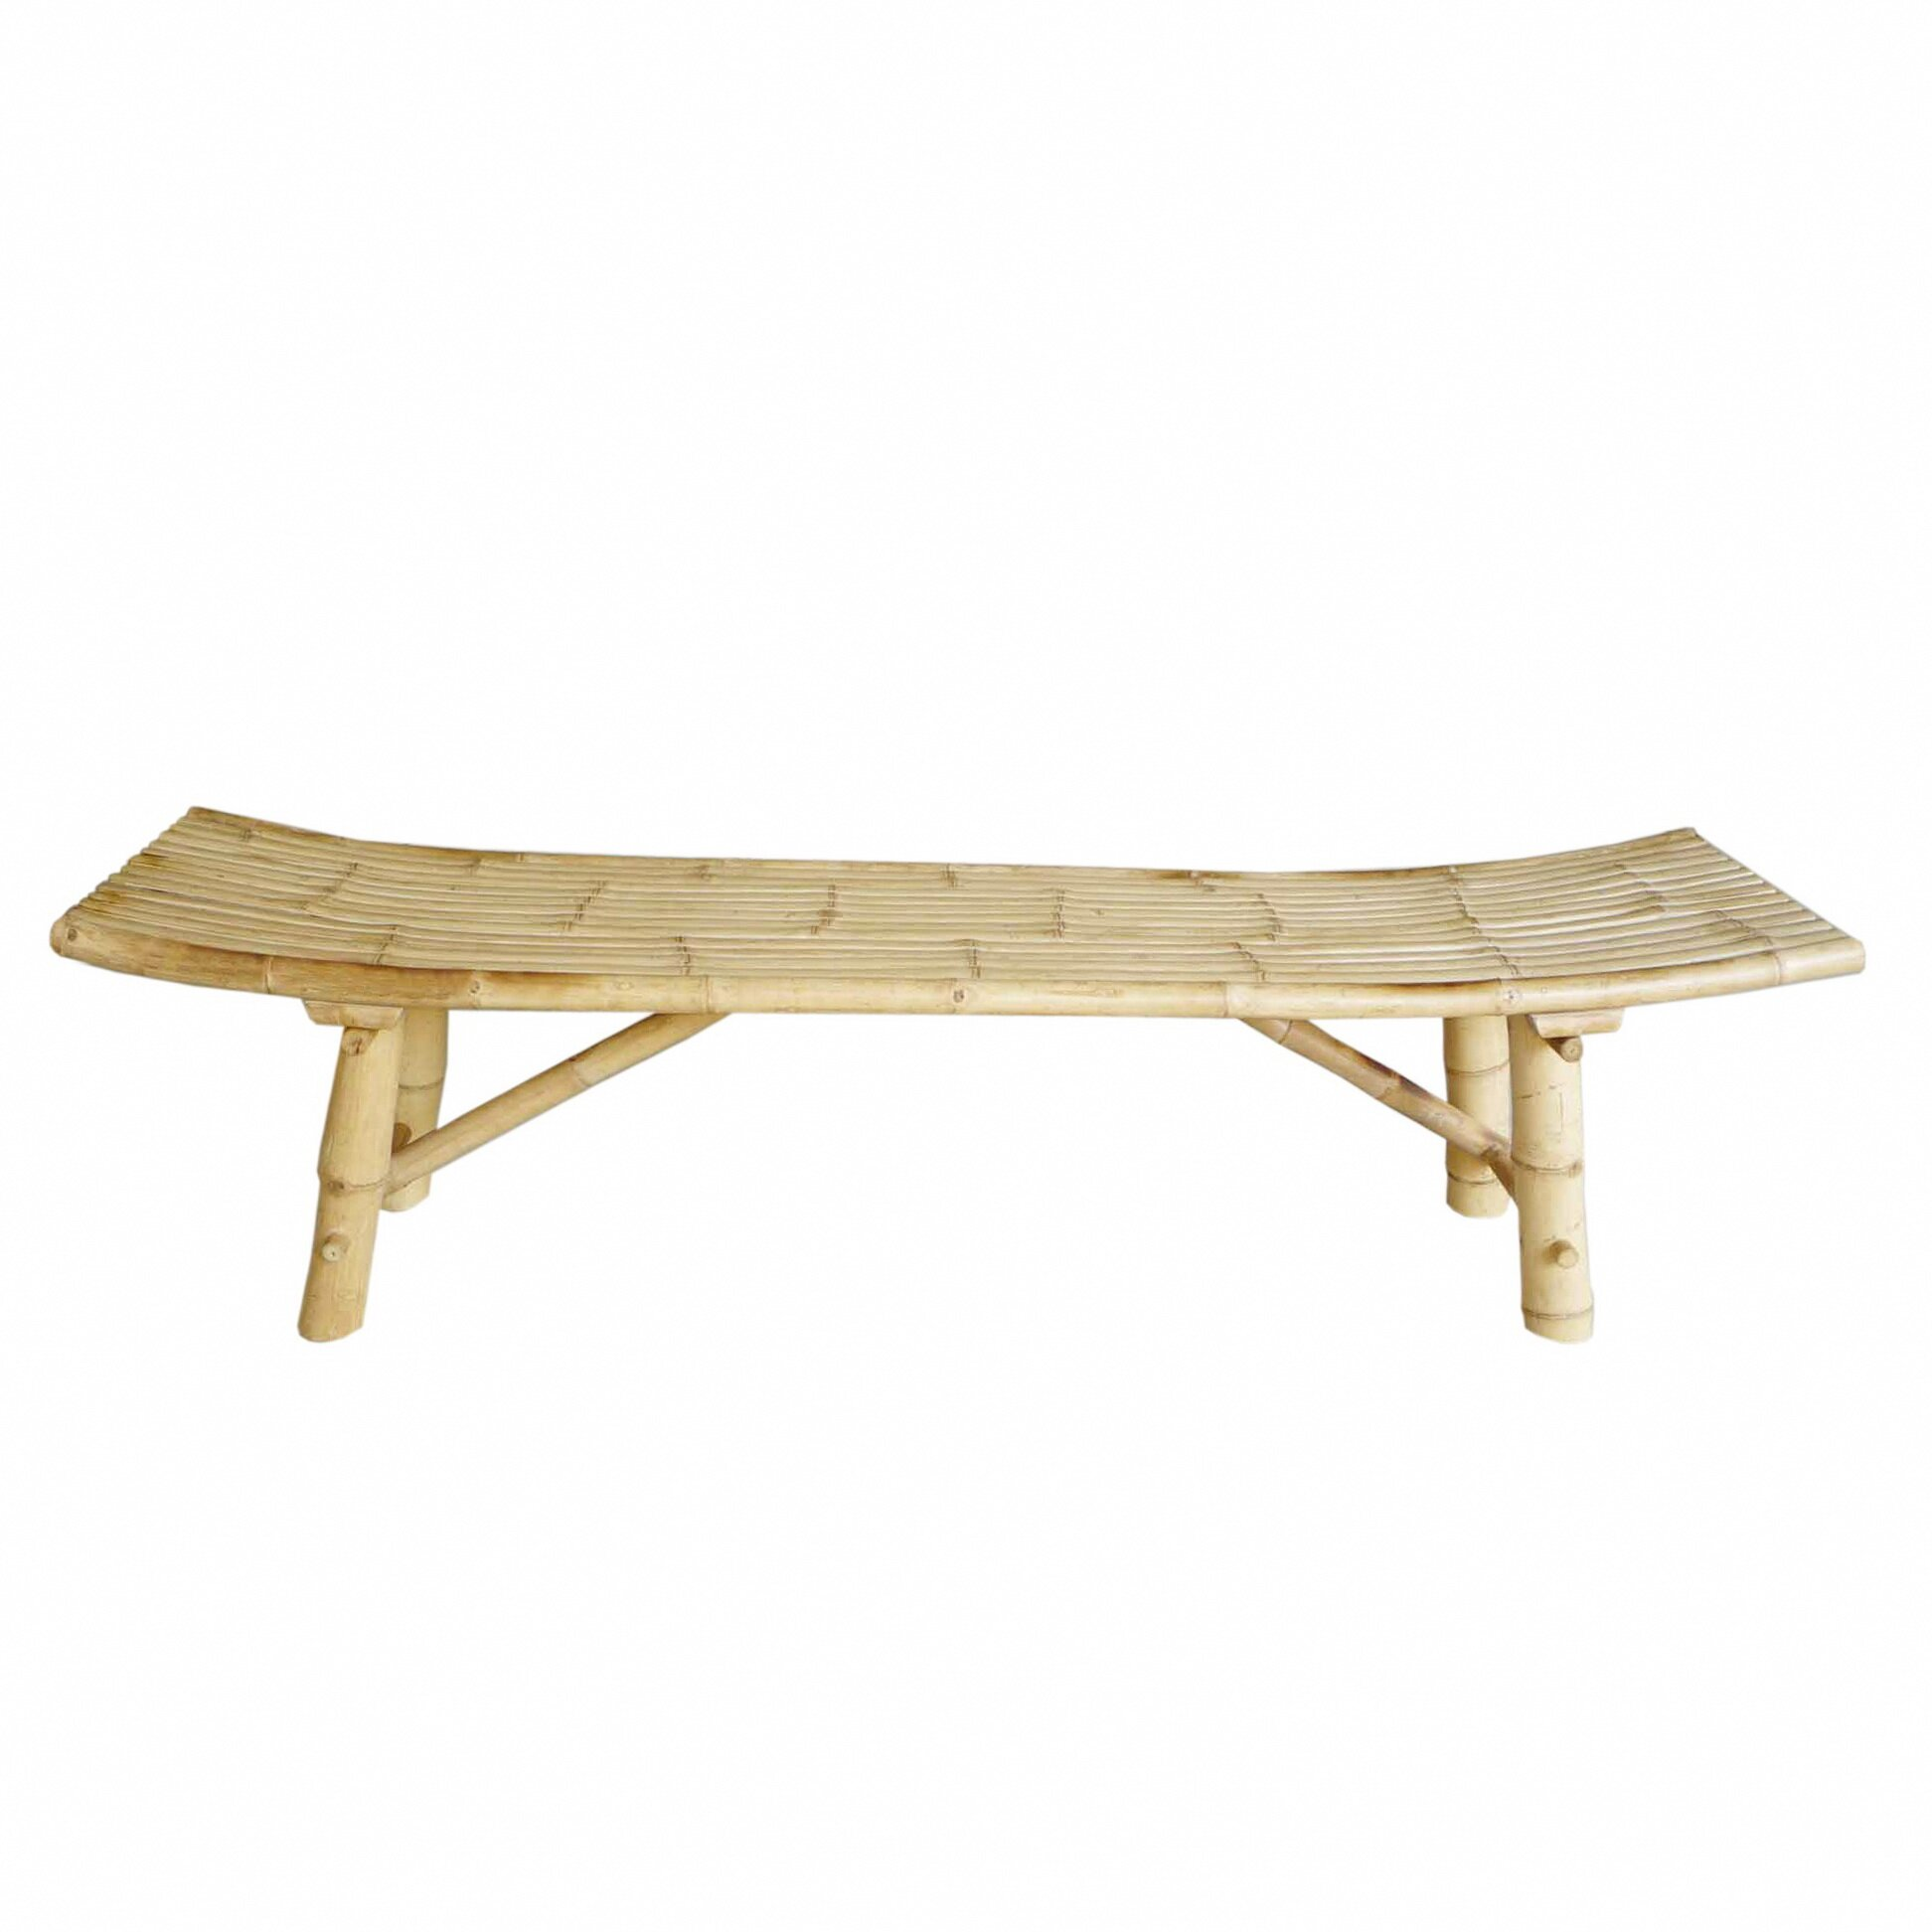 Zew Hand Crafted Indoor Outdoor Bamboo Picnic Bench